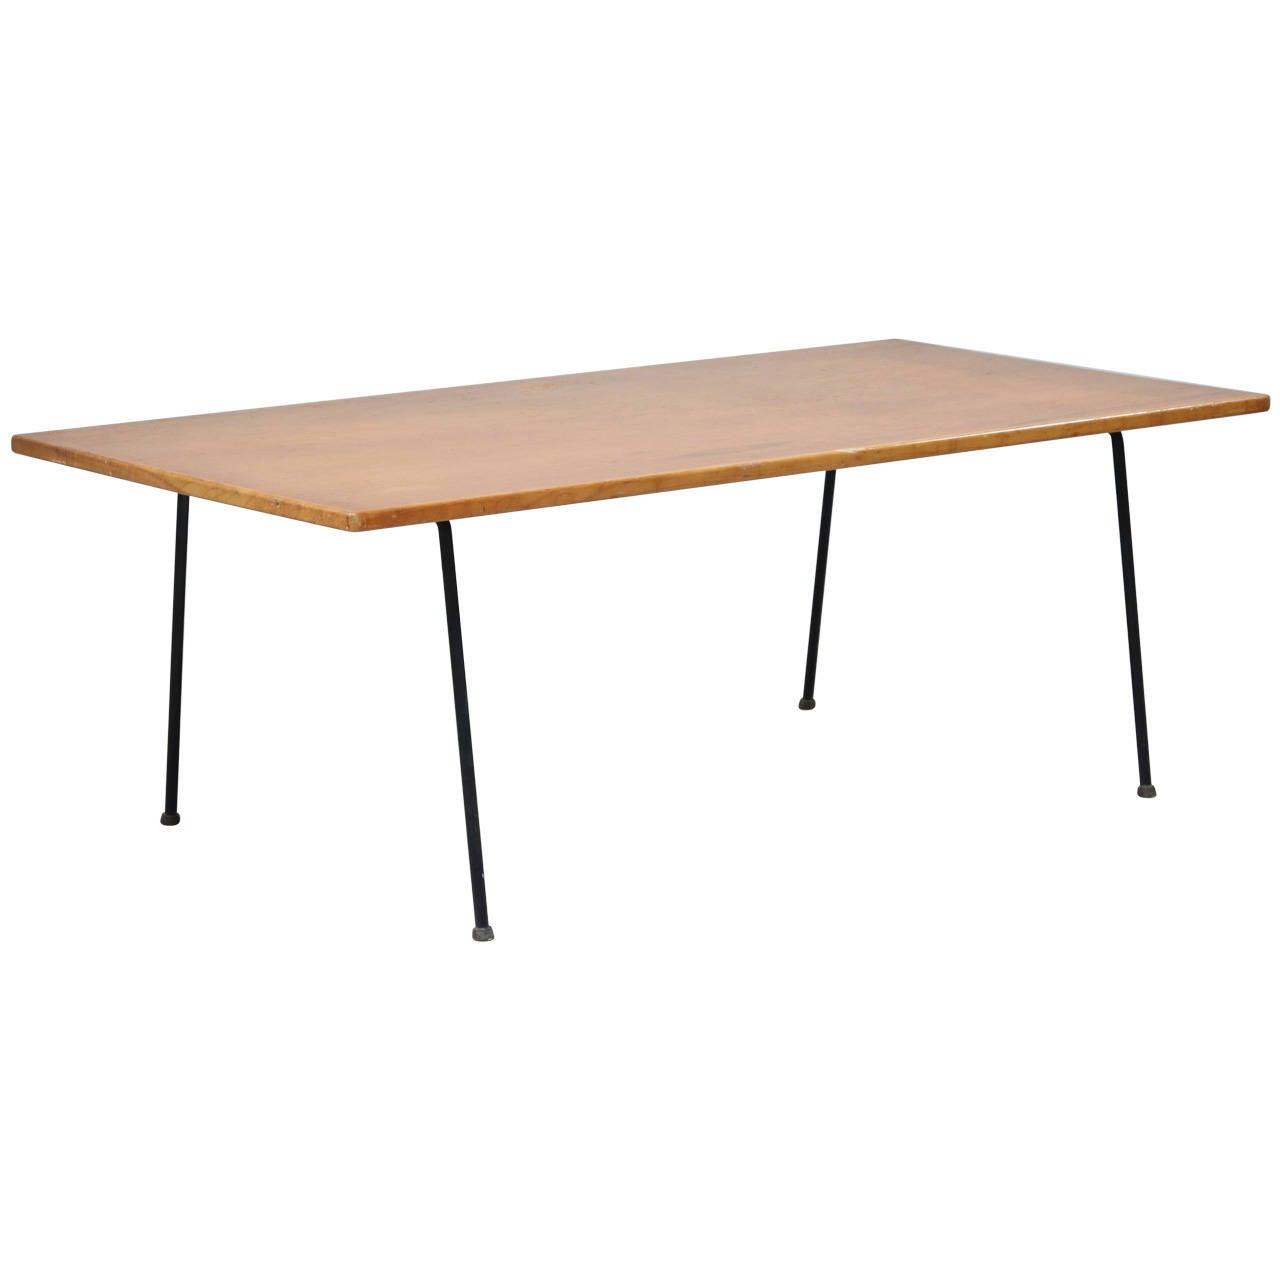 Minimalist Arden Riddle Coffee Table For Sale at 1stdibs